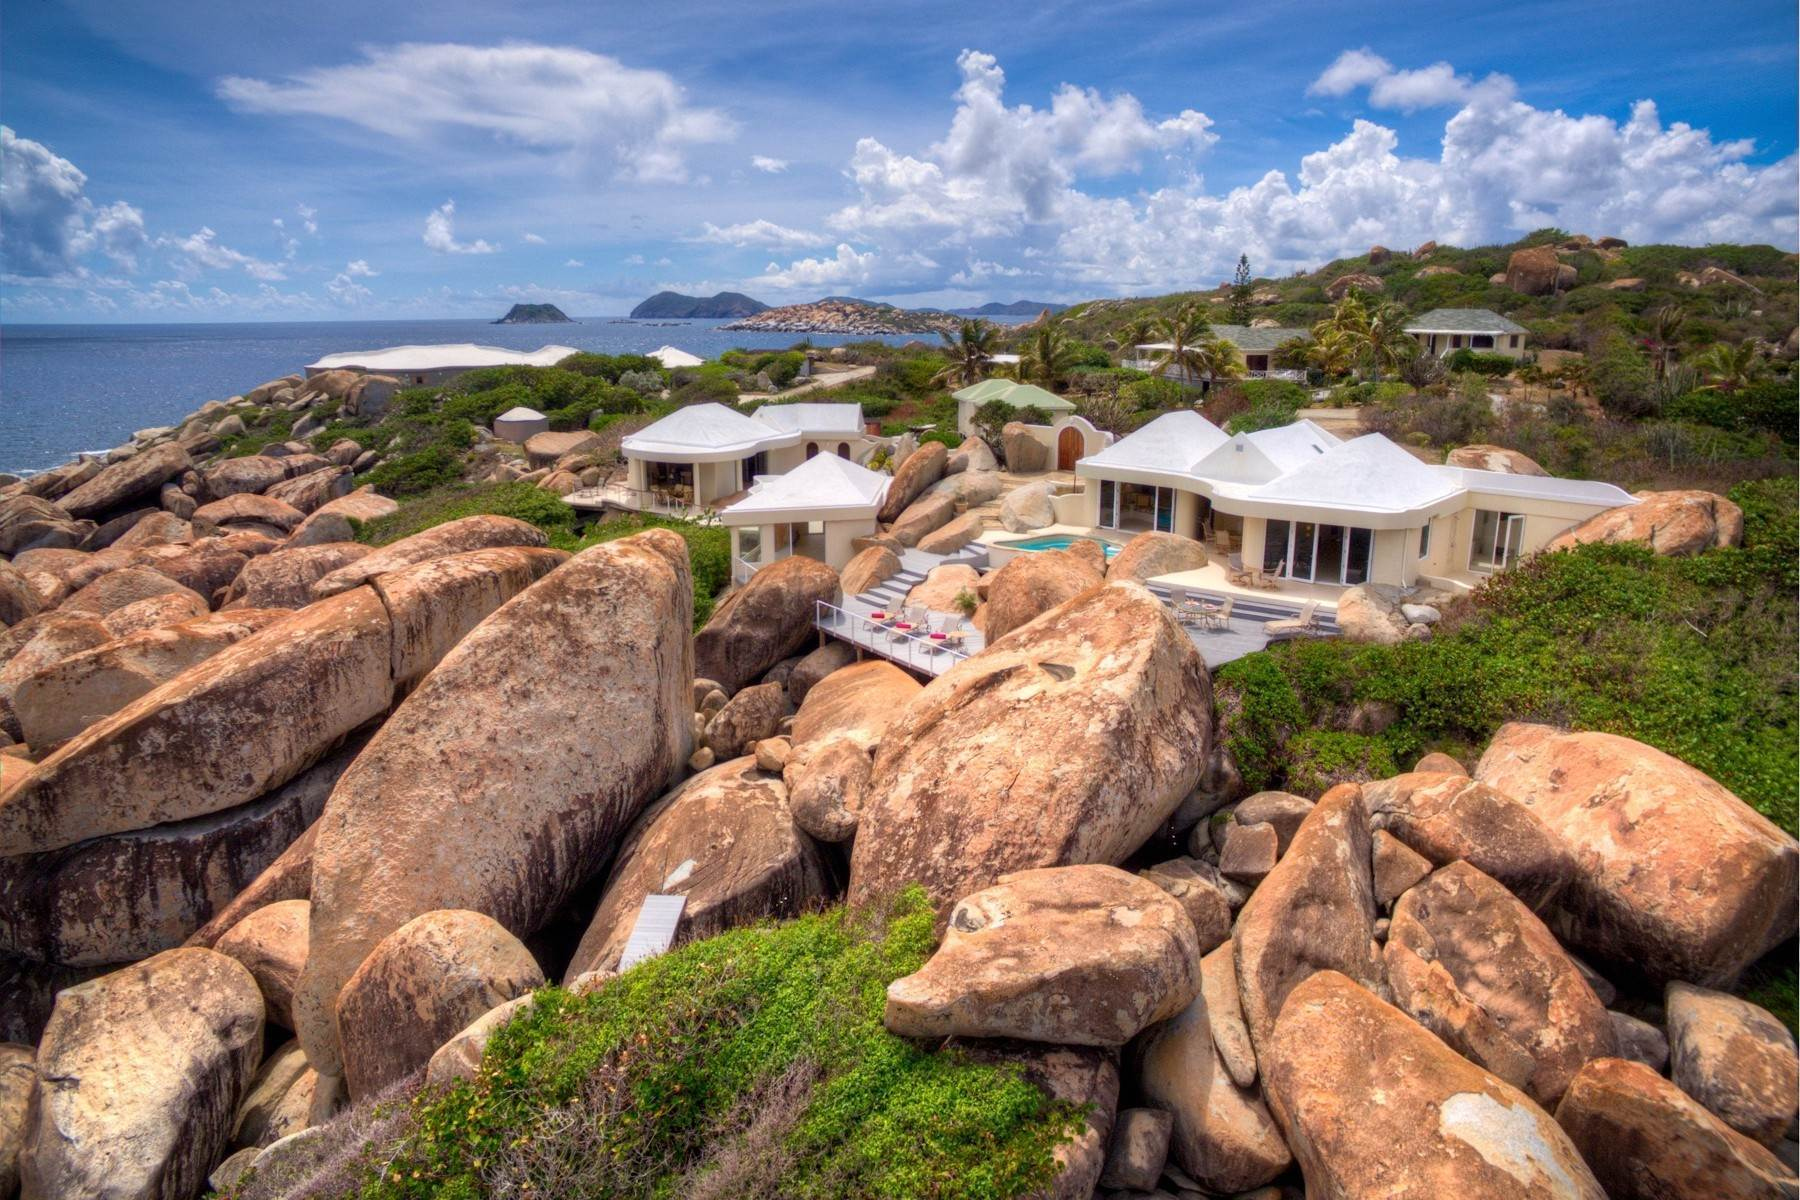 Single Family Homes for Sale at Crook Bay, Virgin Gorda British Virgin Islands